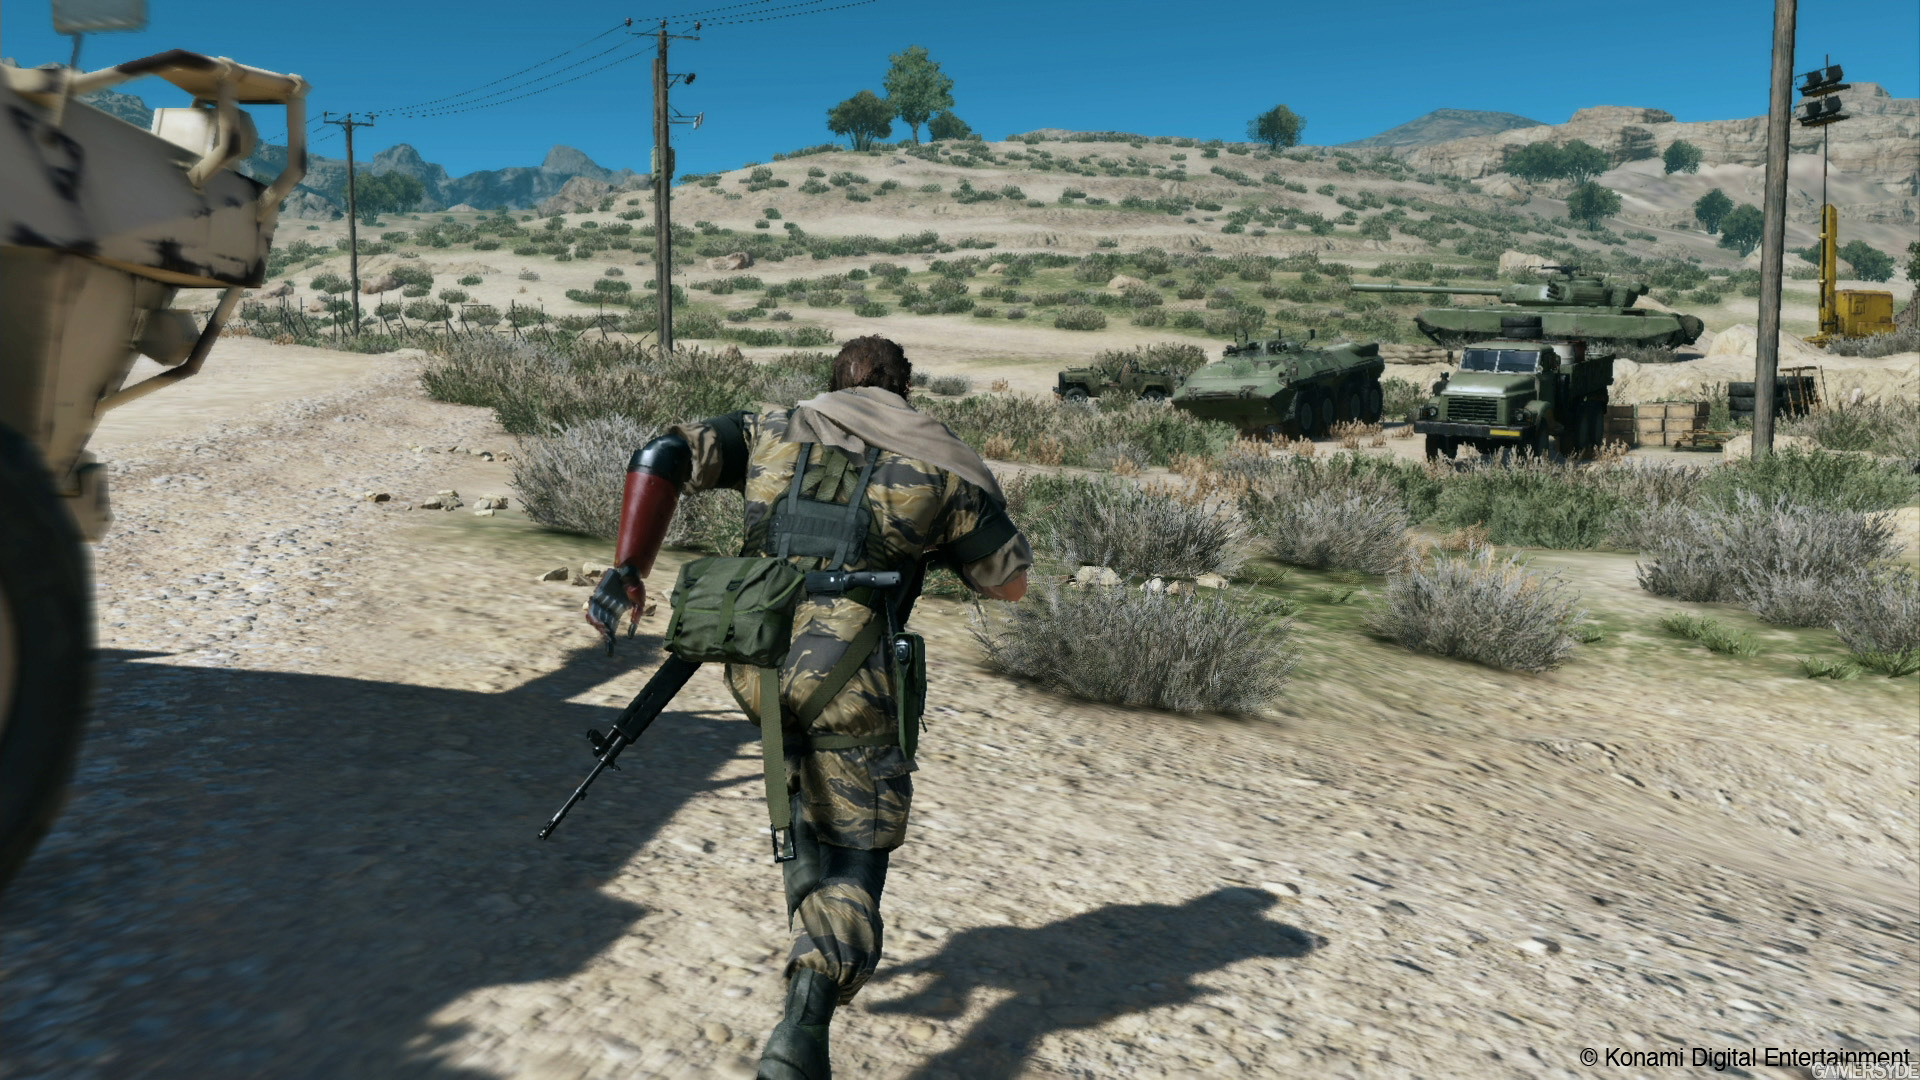 metal gear solid v the phantom pain day 1 update is live adds fob